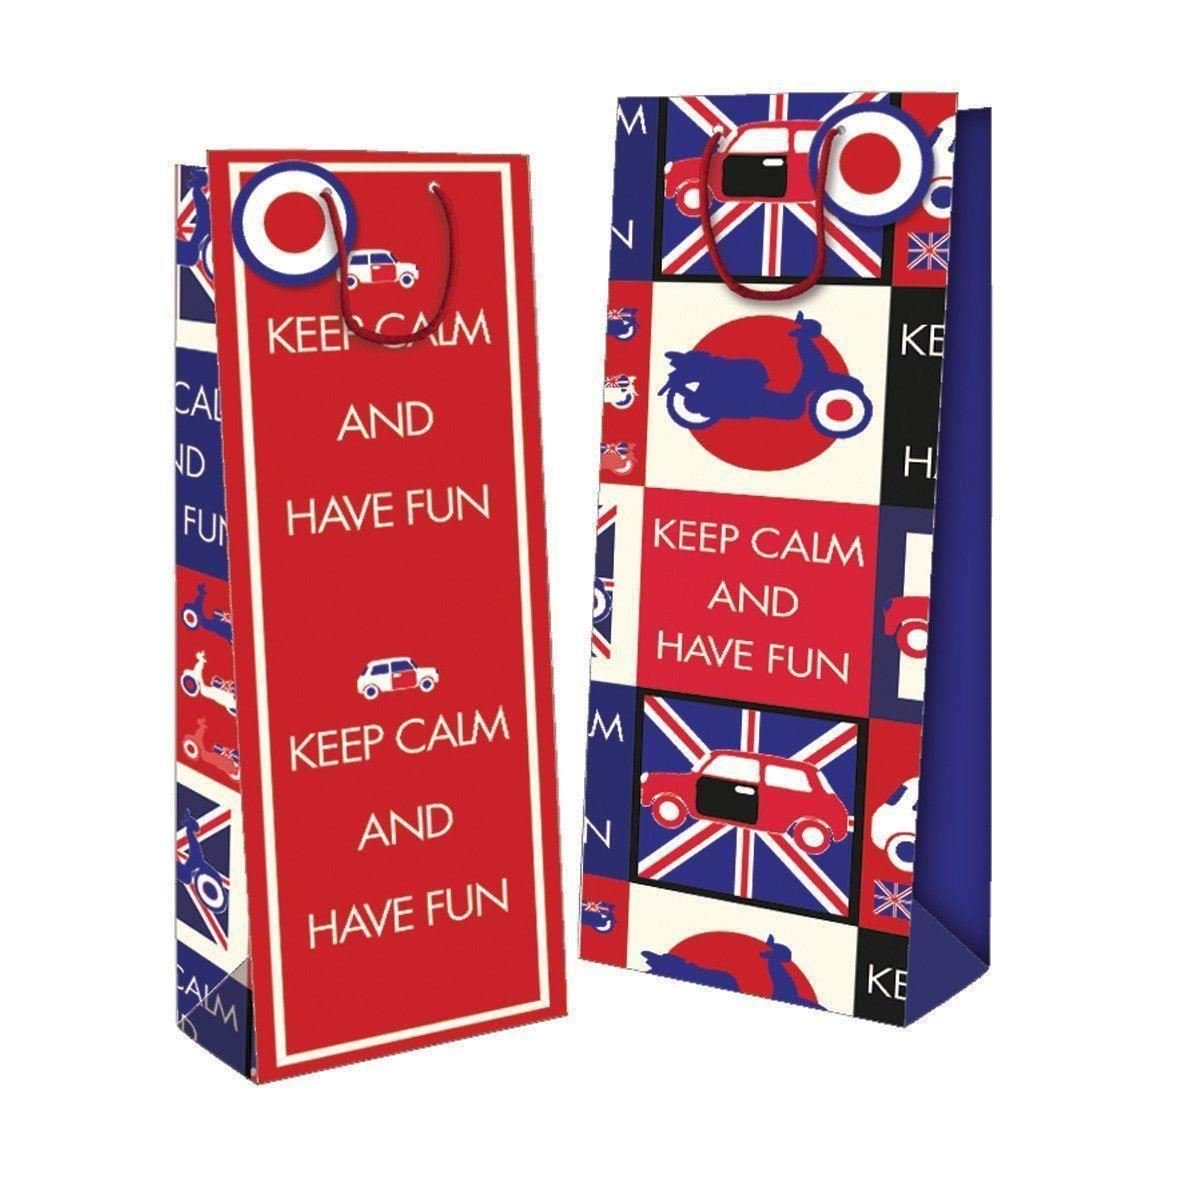 4 Pack Bottle Gift Bag Vintage Keep Calm And Have Fun Design Blue Red Tag Car Wine Retro Concept4u